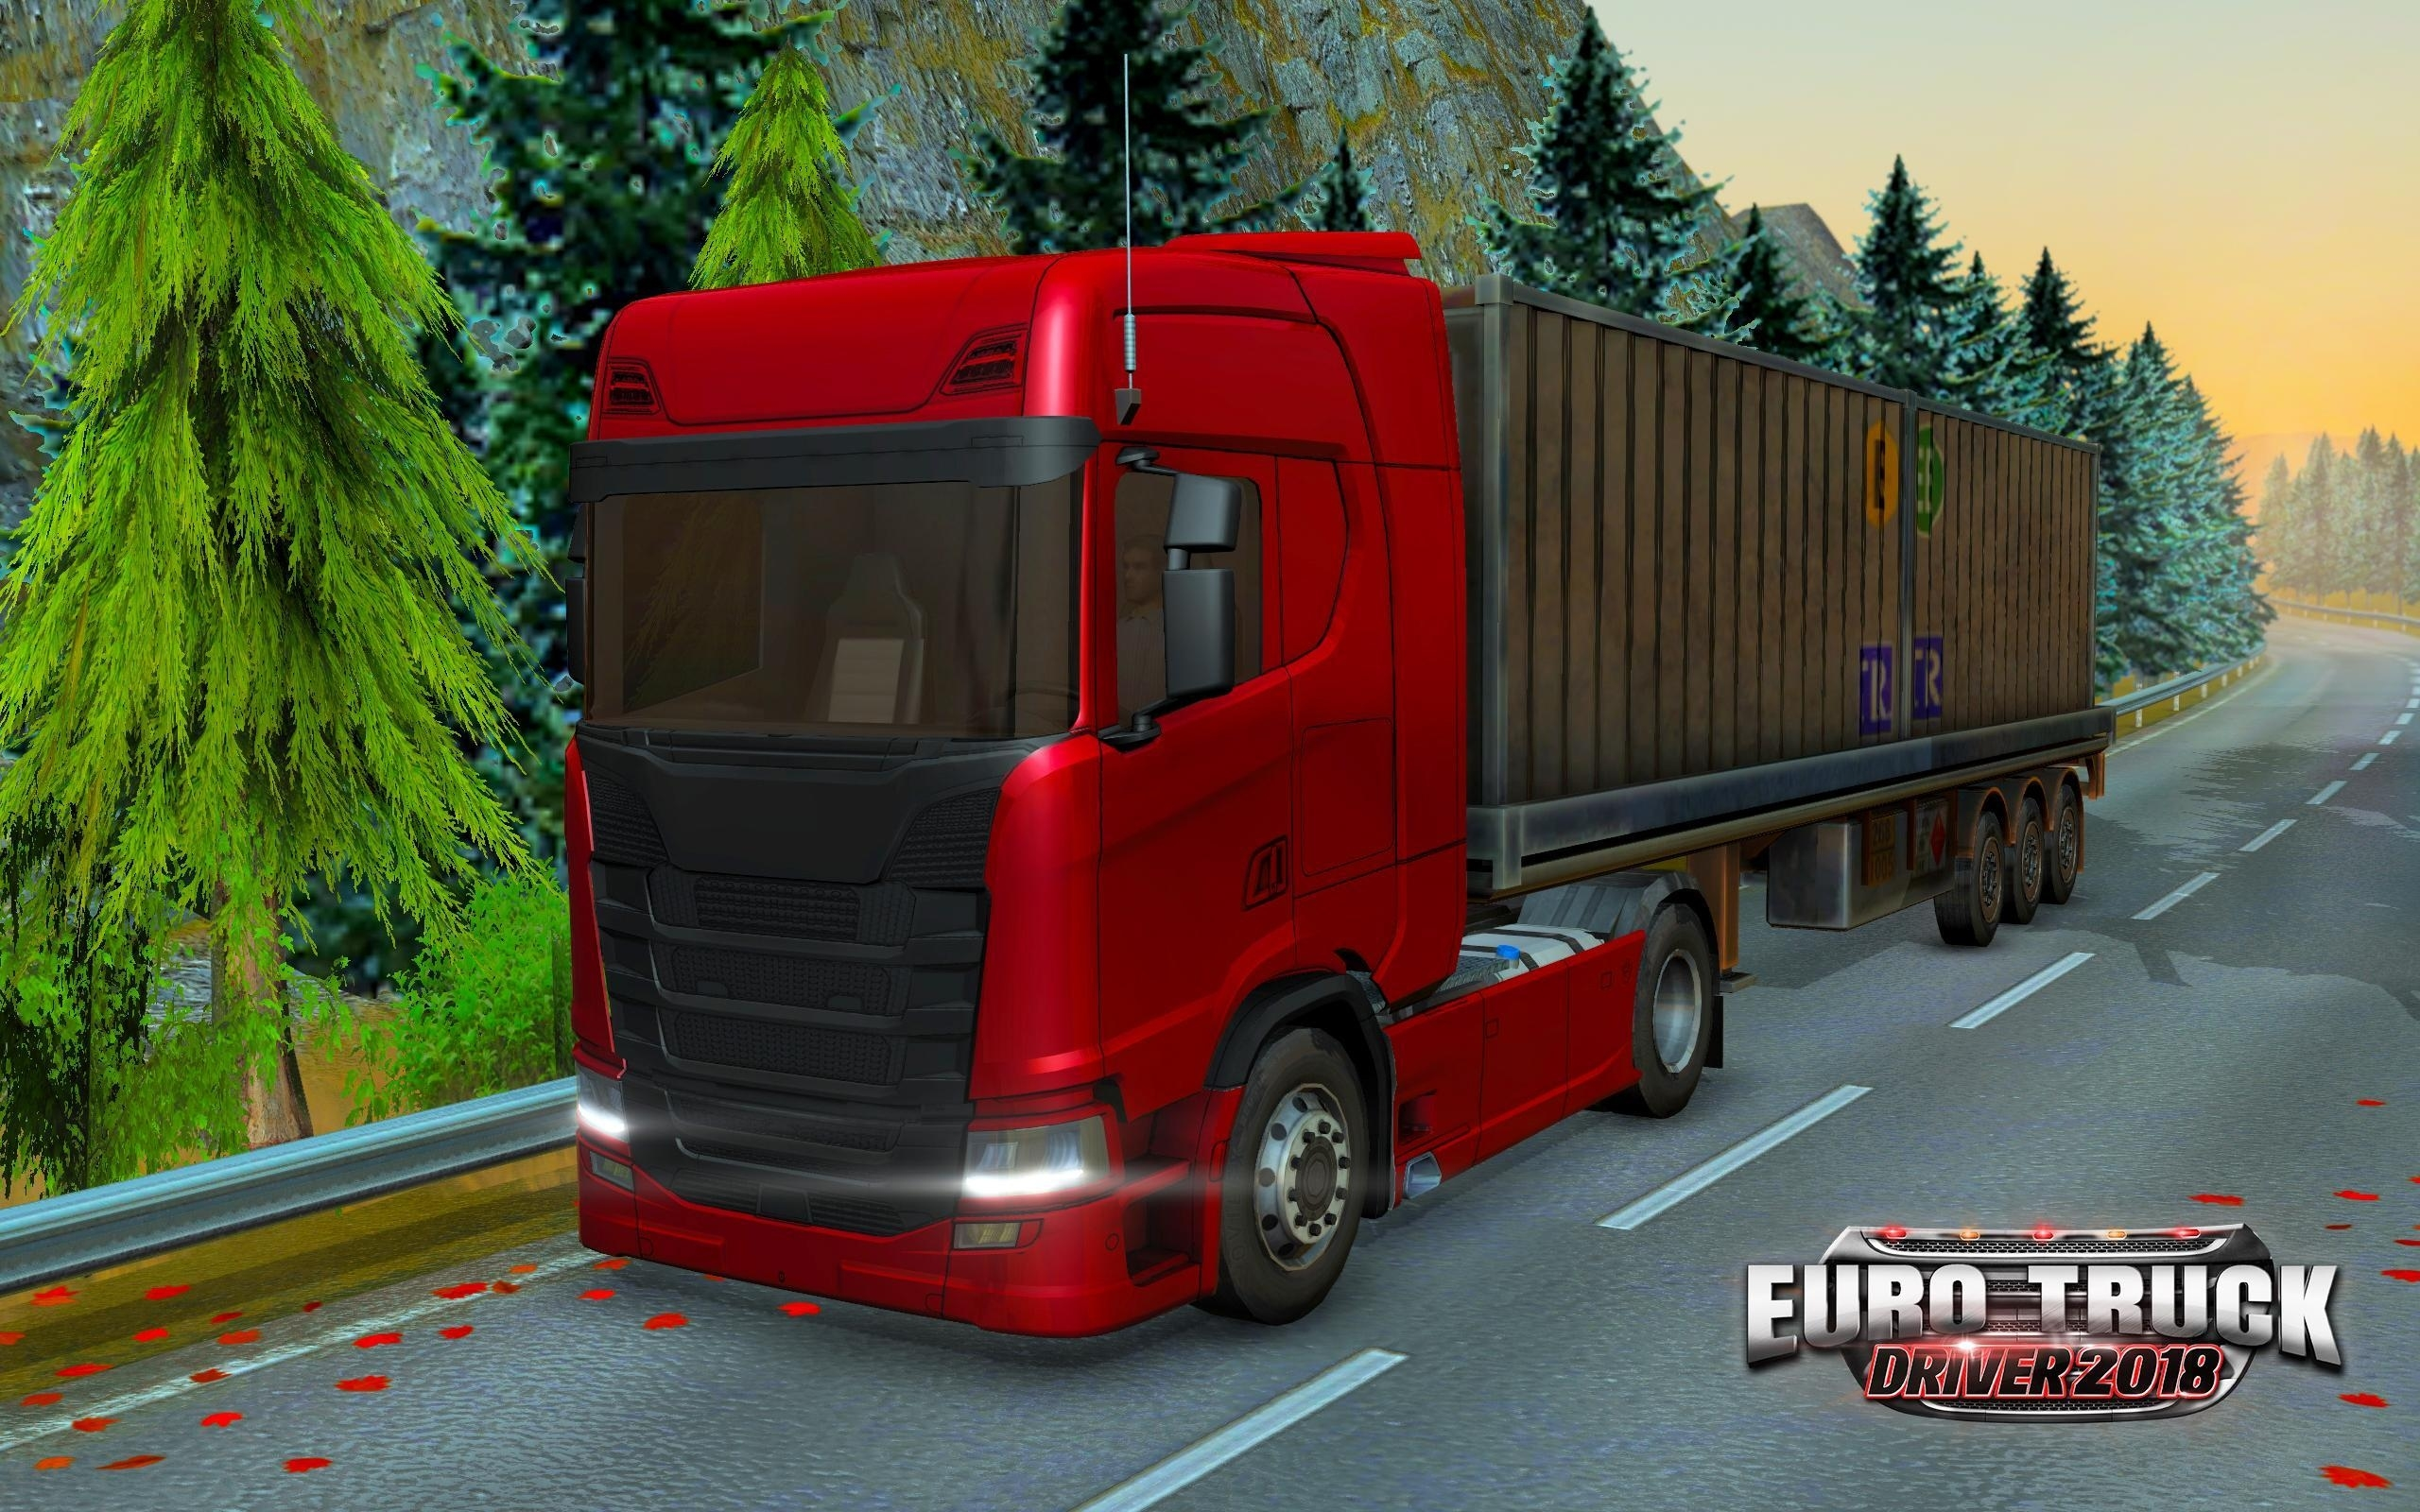 Euro Truck Driver 2018 For Android - Apk Download with German Truck Simulator Europe Map Download